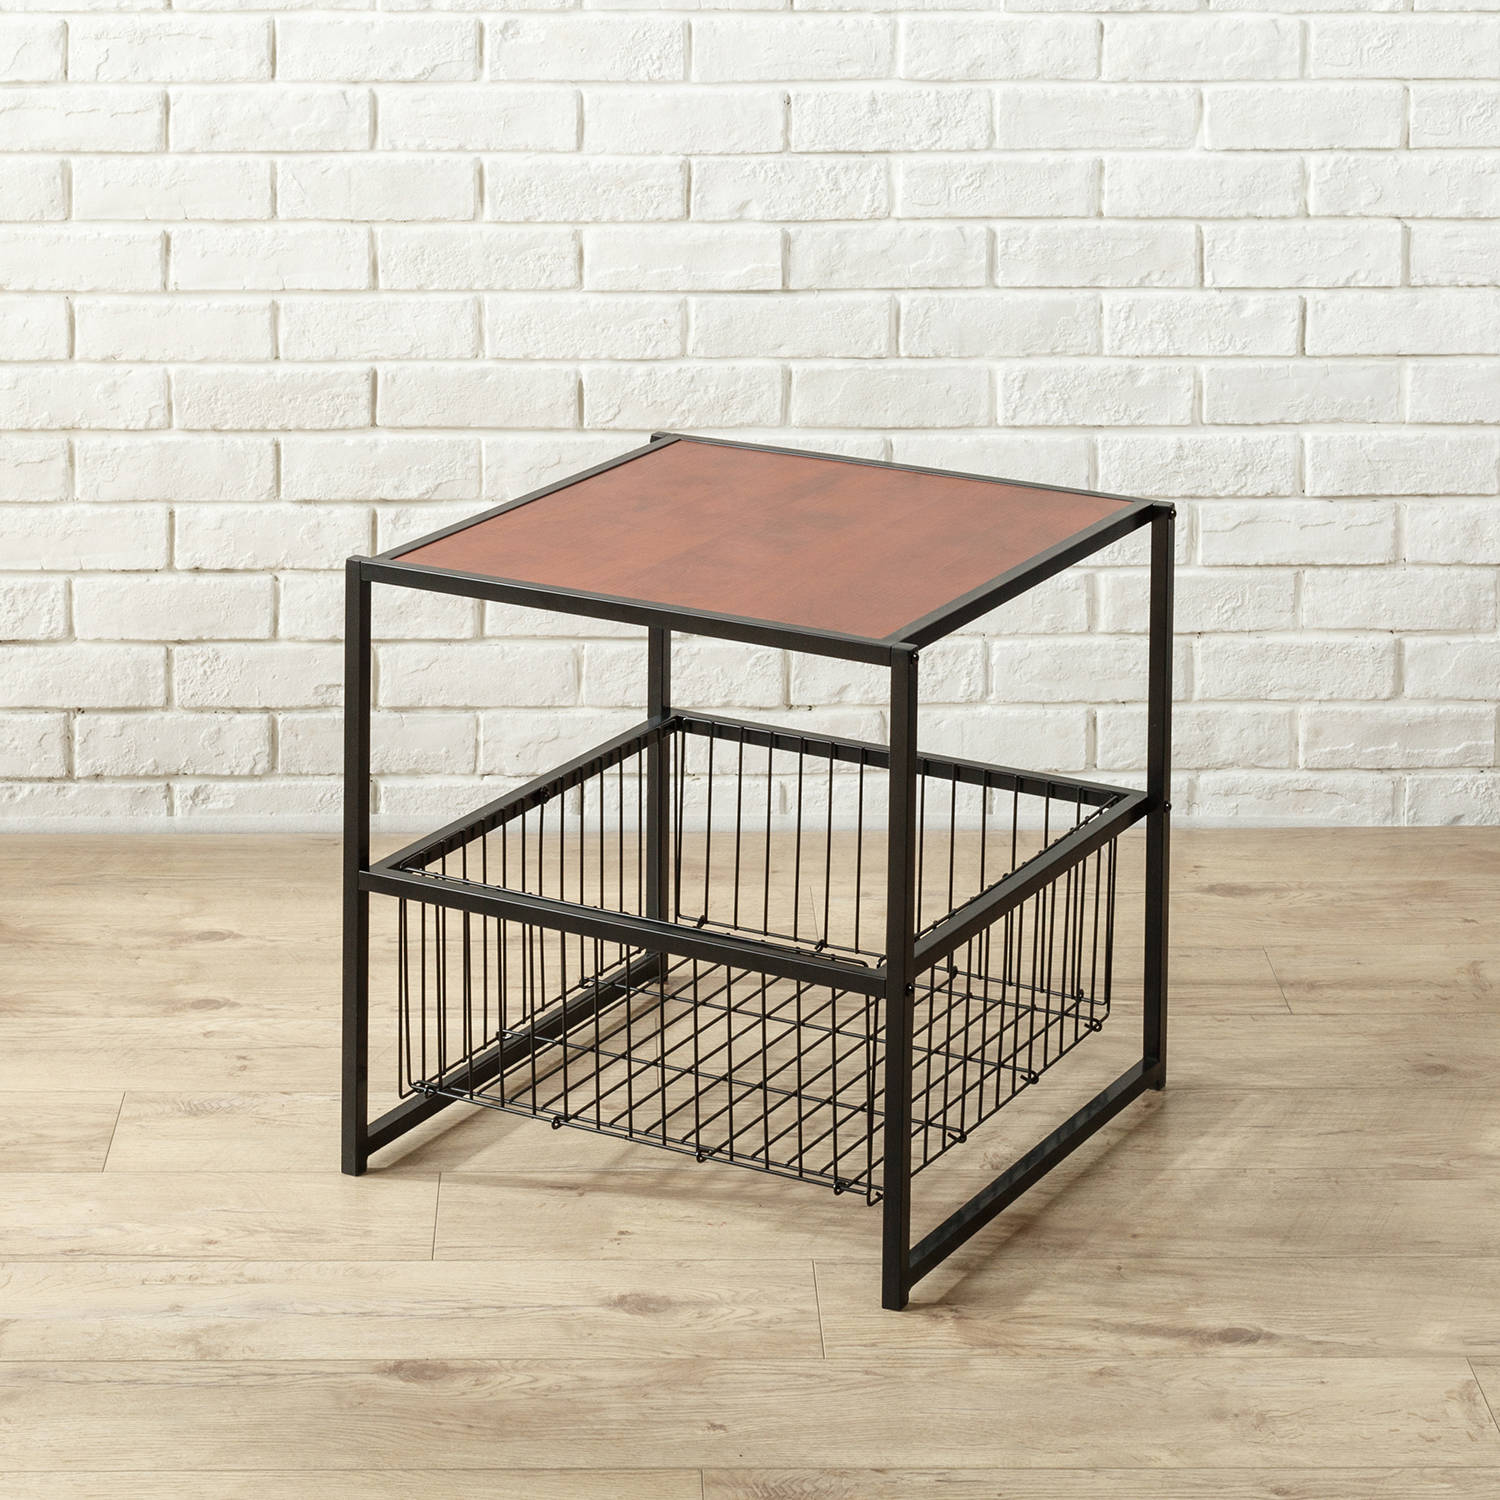 Zinus Deluxe Square End Table with Metal Storage Basket